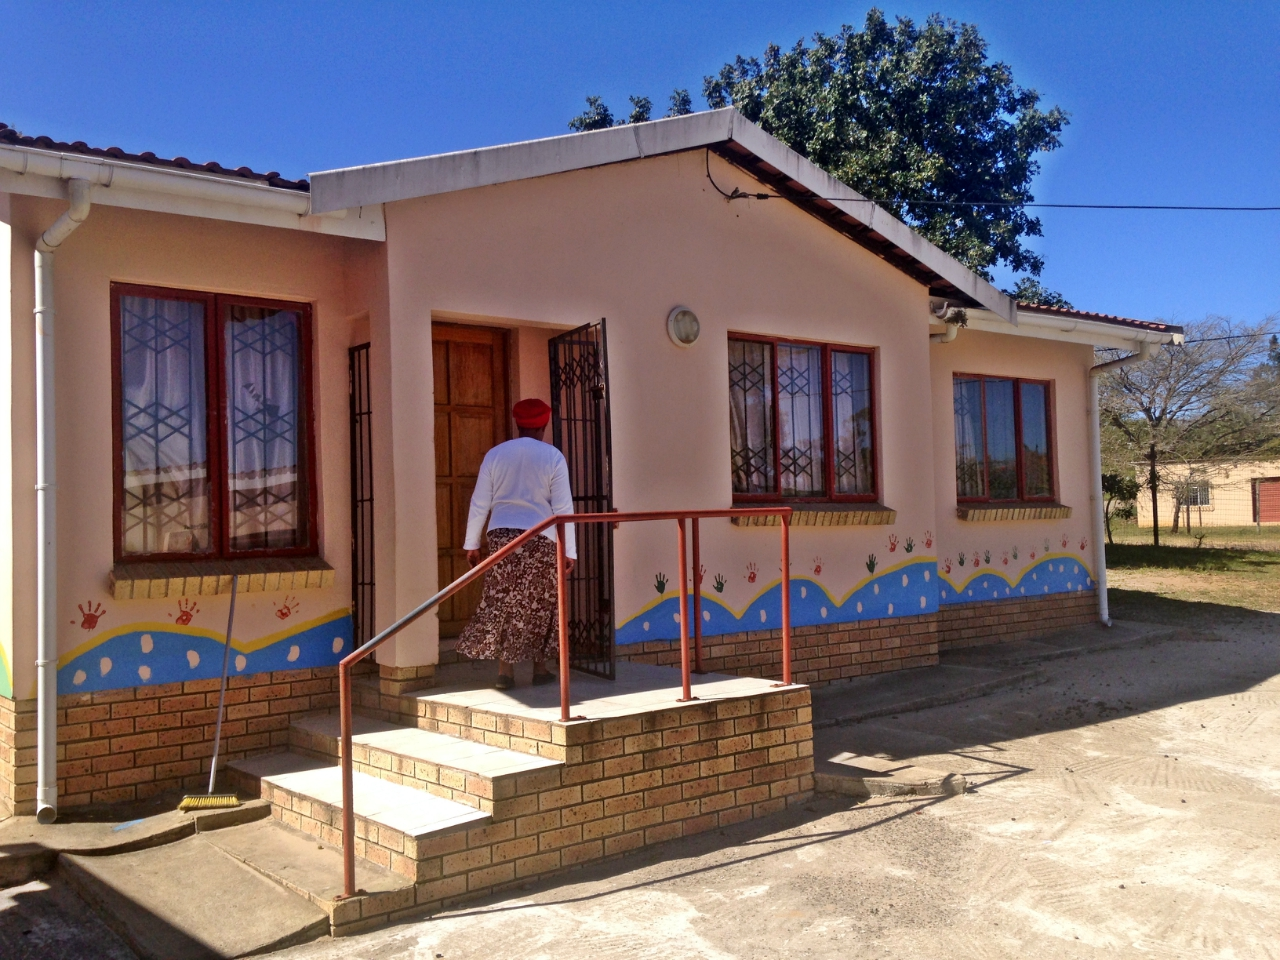 Khula Village Borehole Project - South Africa